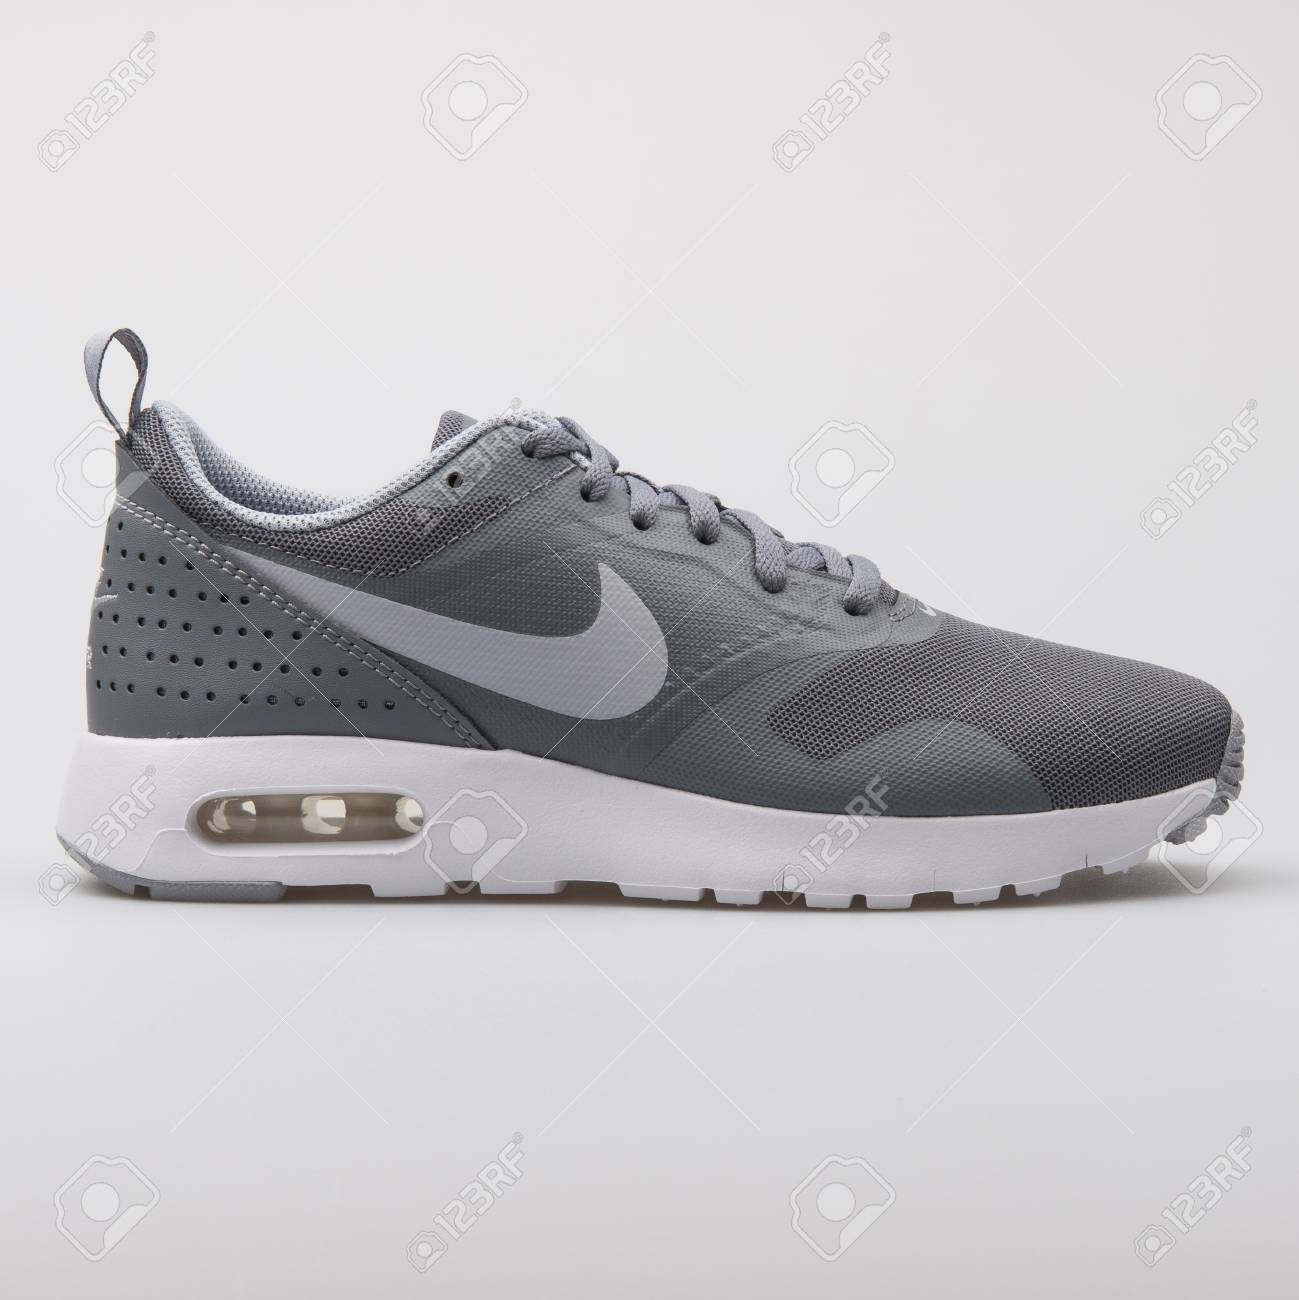 VIENNA, AUSTRIA AUGUST 7, 2017: Nike Air Max Tavas grey and..